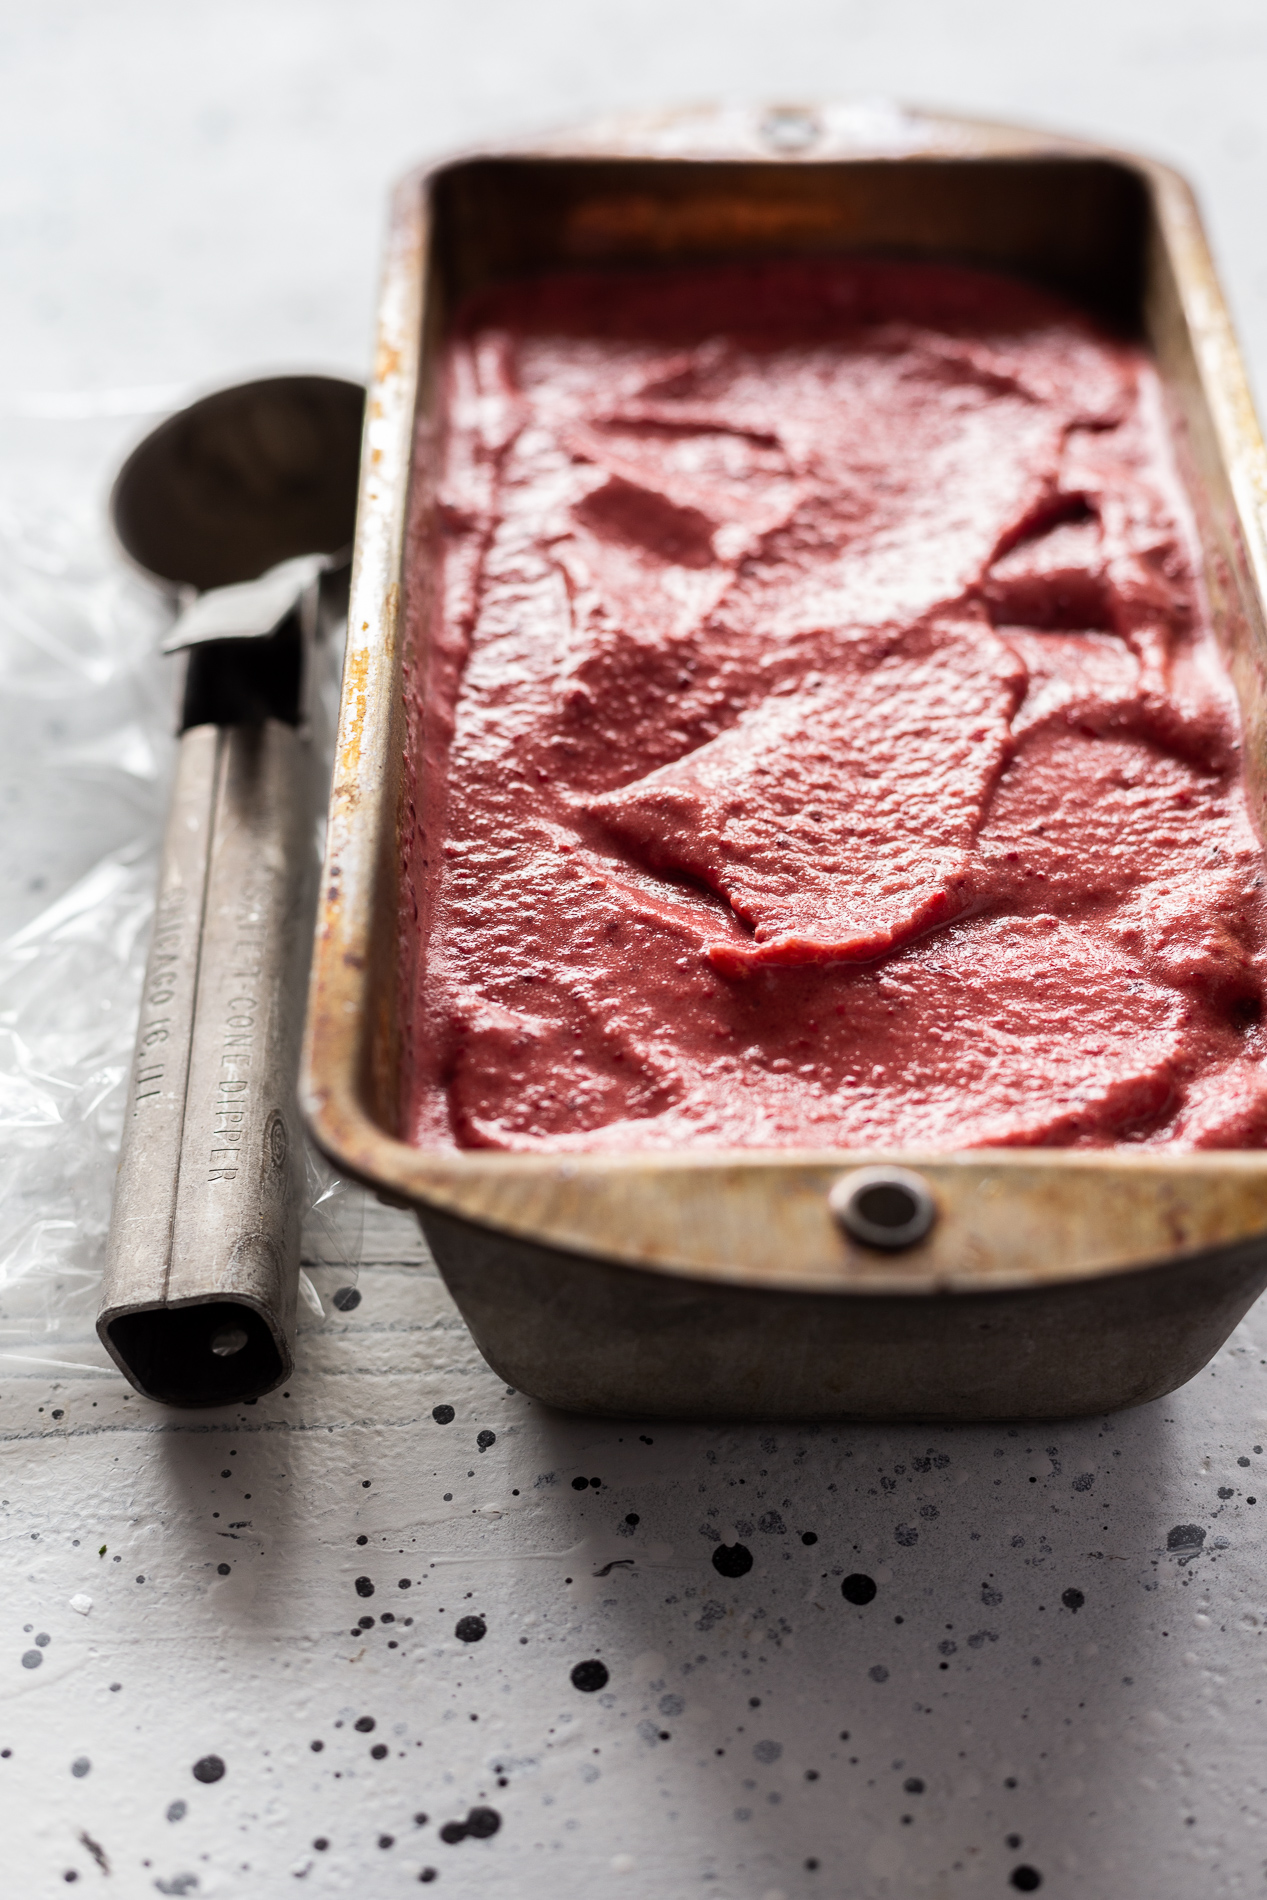 angled view of a tin of instant cherry ice cream with a scoop sitting beside it